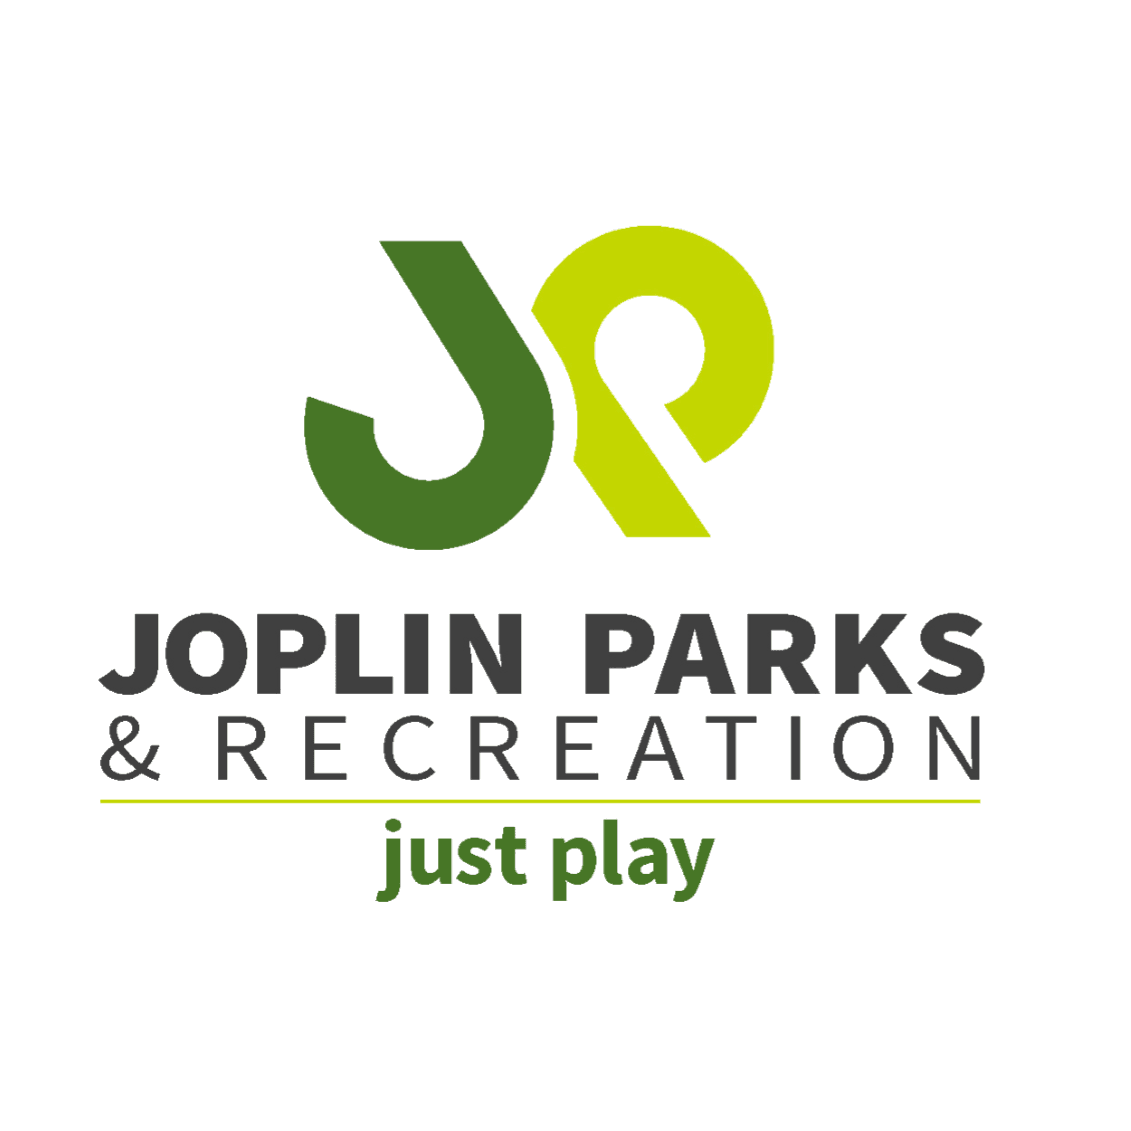 Joplin Parks and Recreation